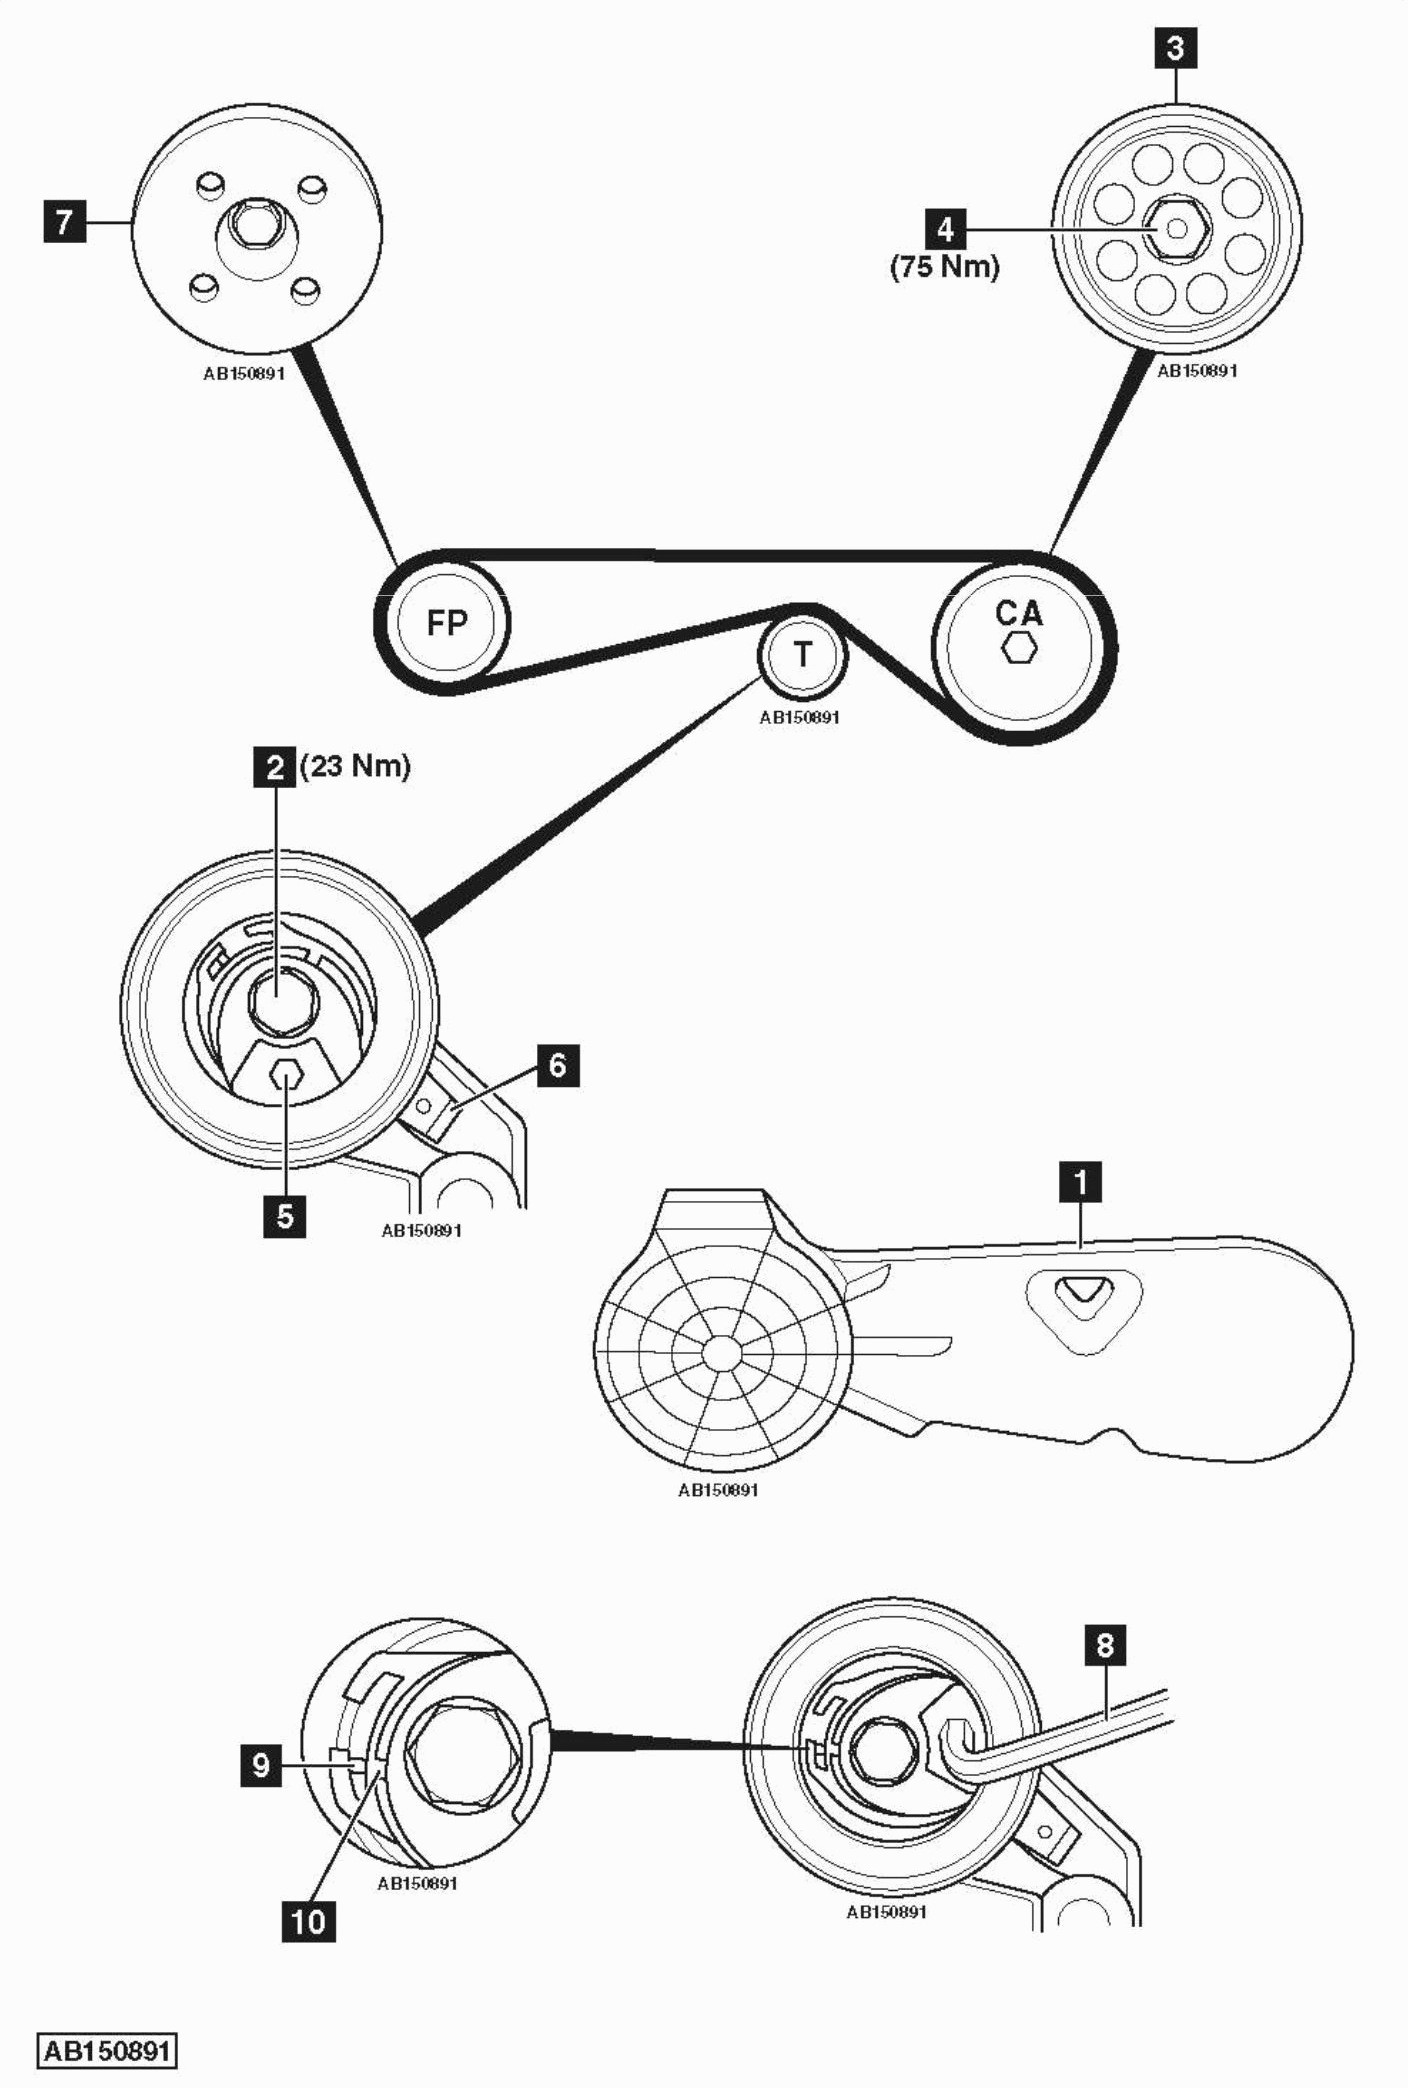 Bmw E46 Engine Diagram Bmw Timing Belt New How to Replace Timing Chain Bmw 320d E46 Of Bmw E46 Engine Diagram